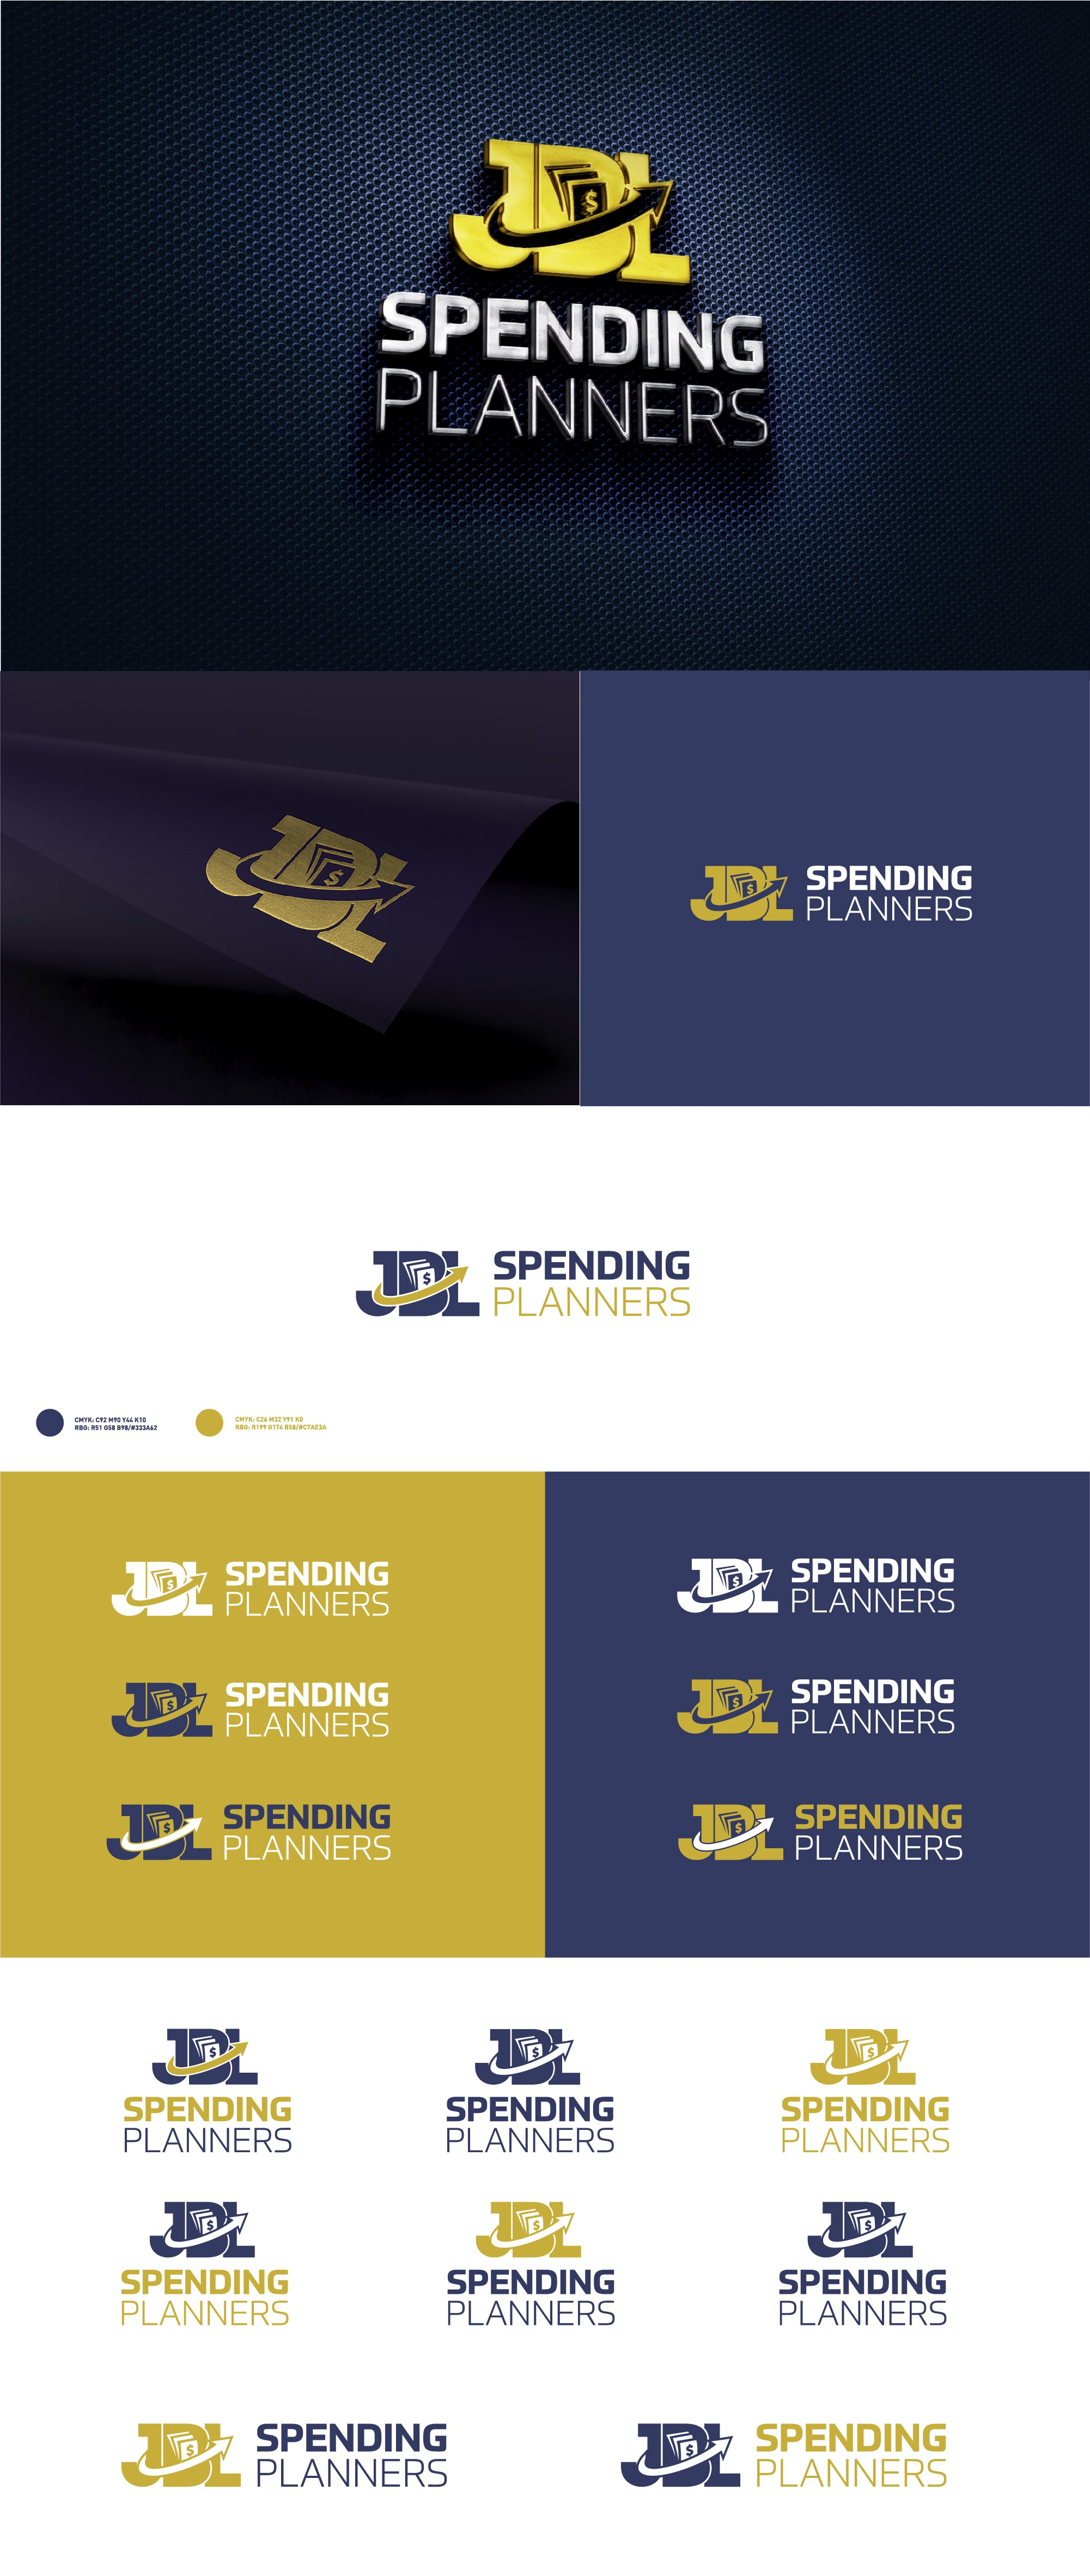 JBL Spending Planners needs a logo to show people they can be free from financial woes!